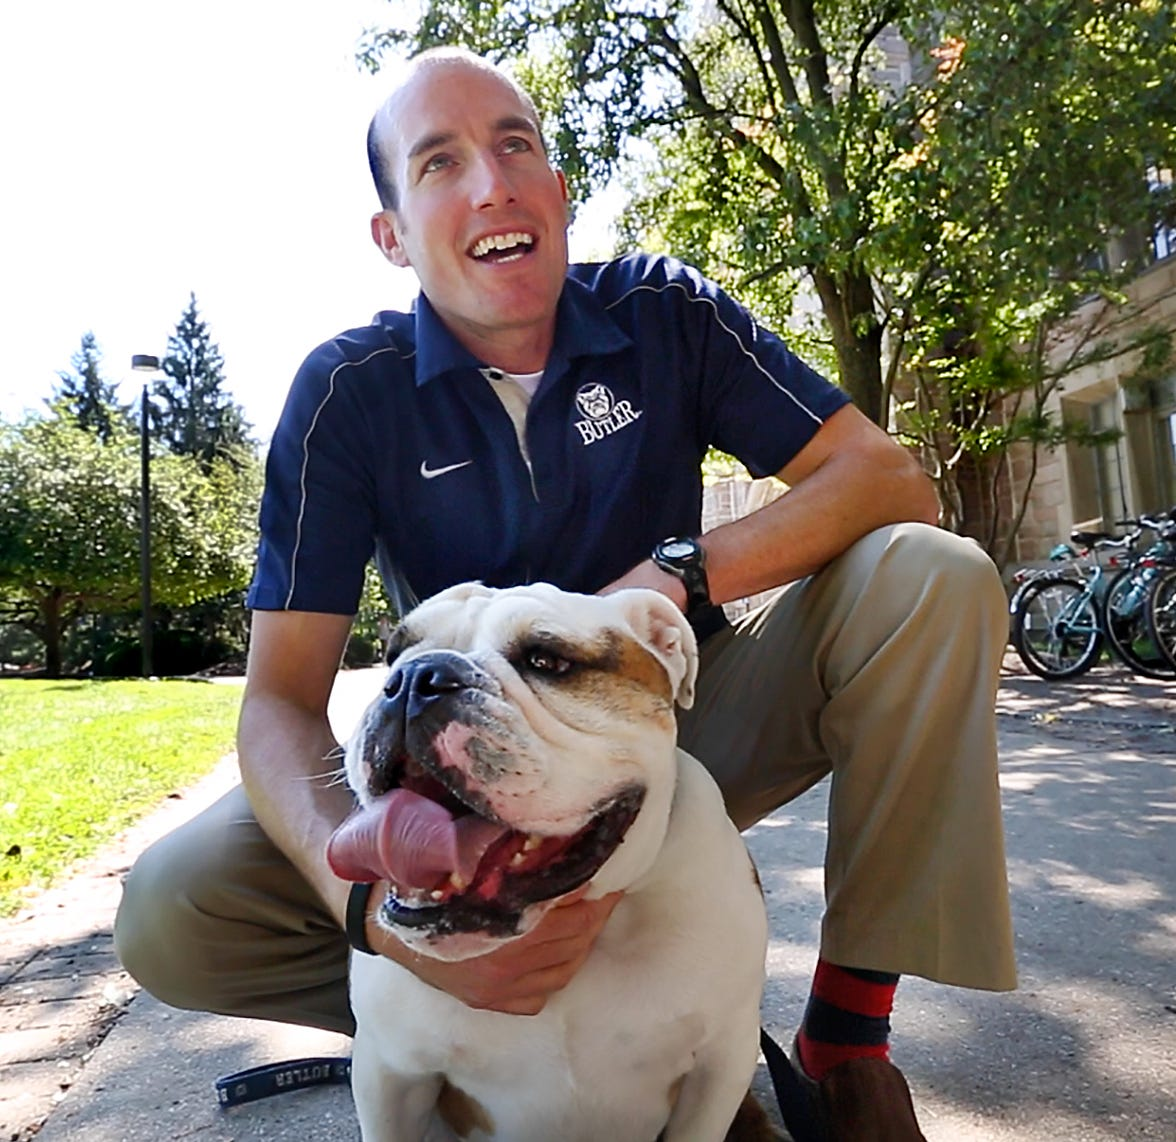 Butler Blue handler Michael Kaltenmark needs new kidney